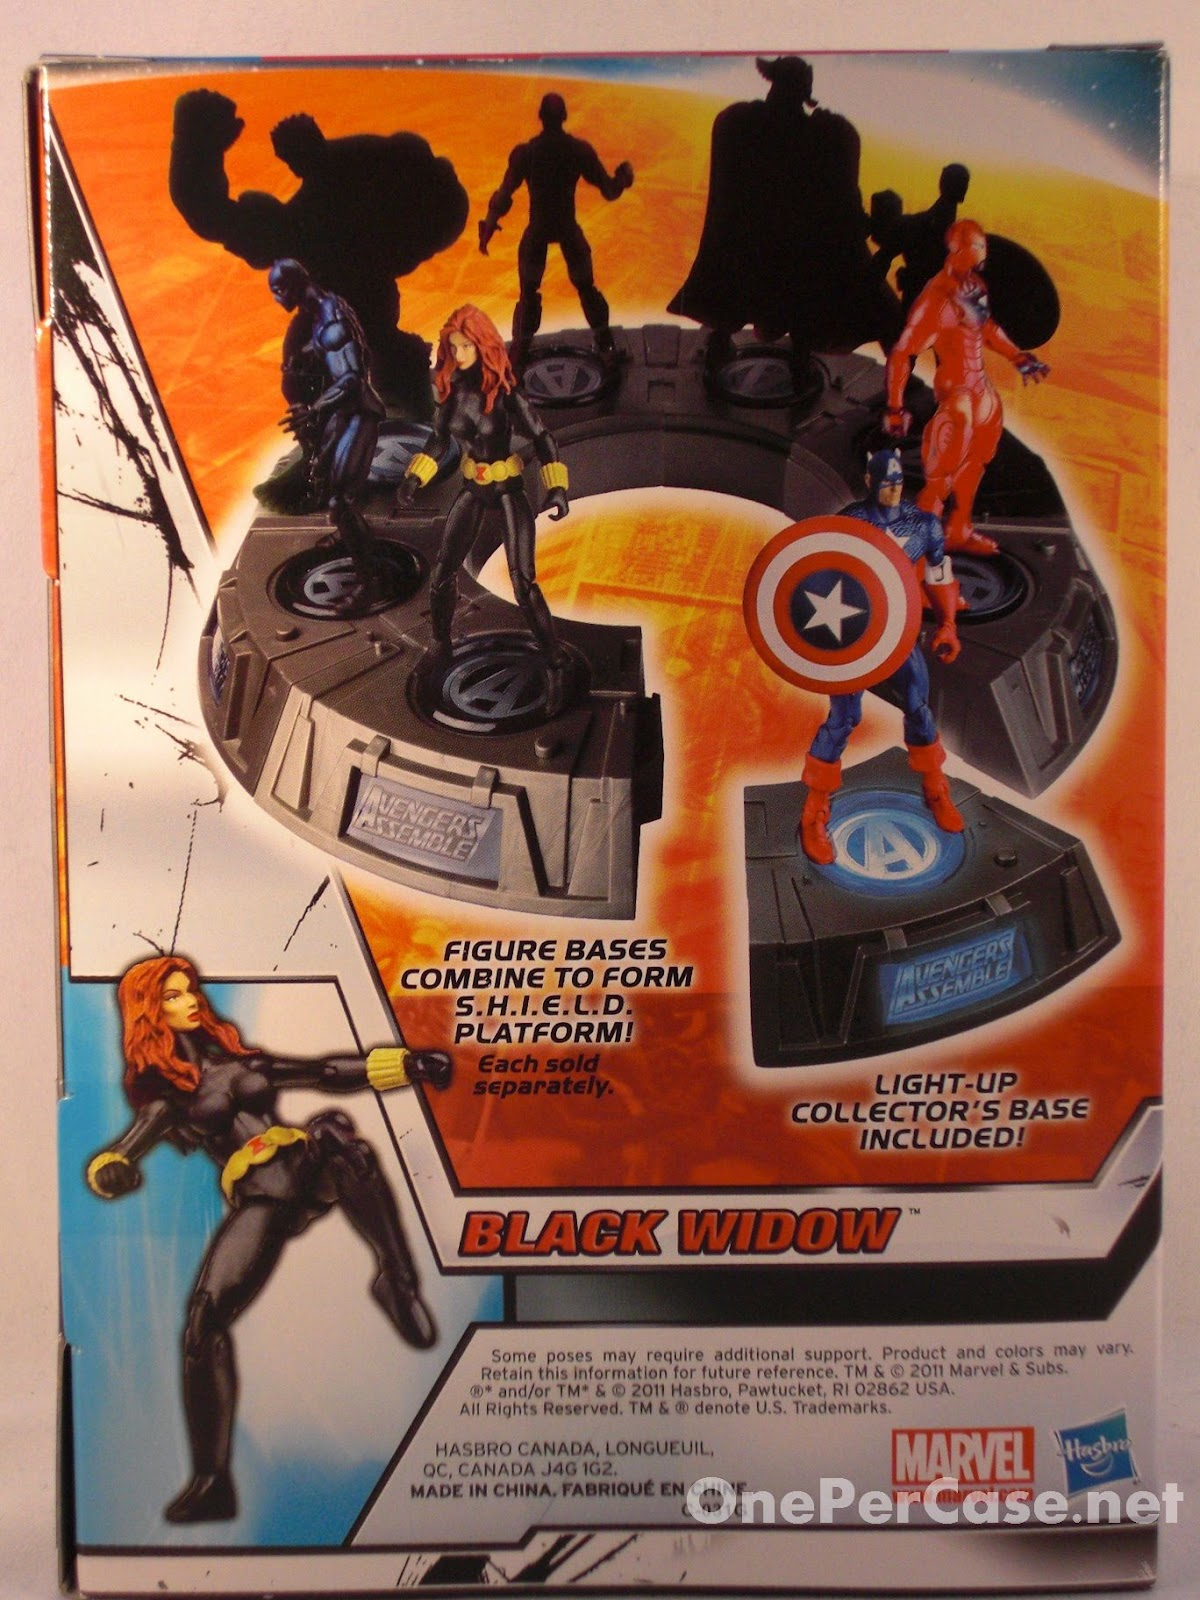 Avengers Wall Lights Toys R Us : One Per Case: Marvel Universe Avengers Light-Up Base Wave 2 - Black Widow (Plus a Variation)